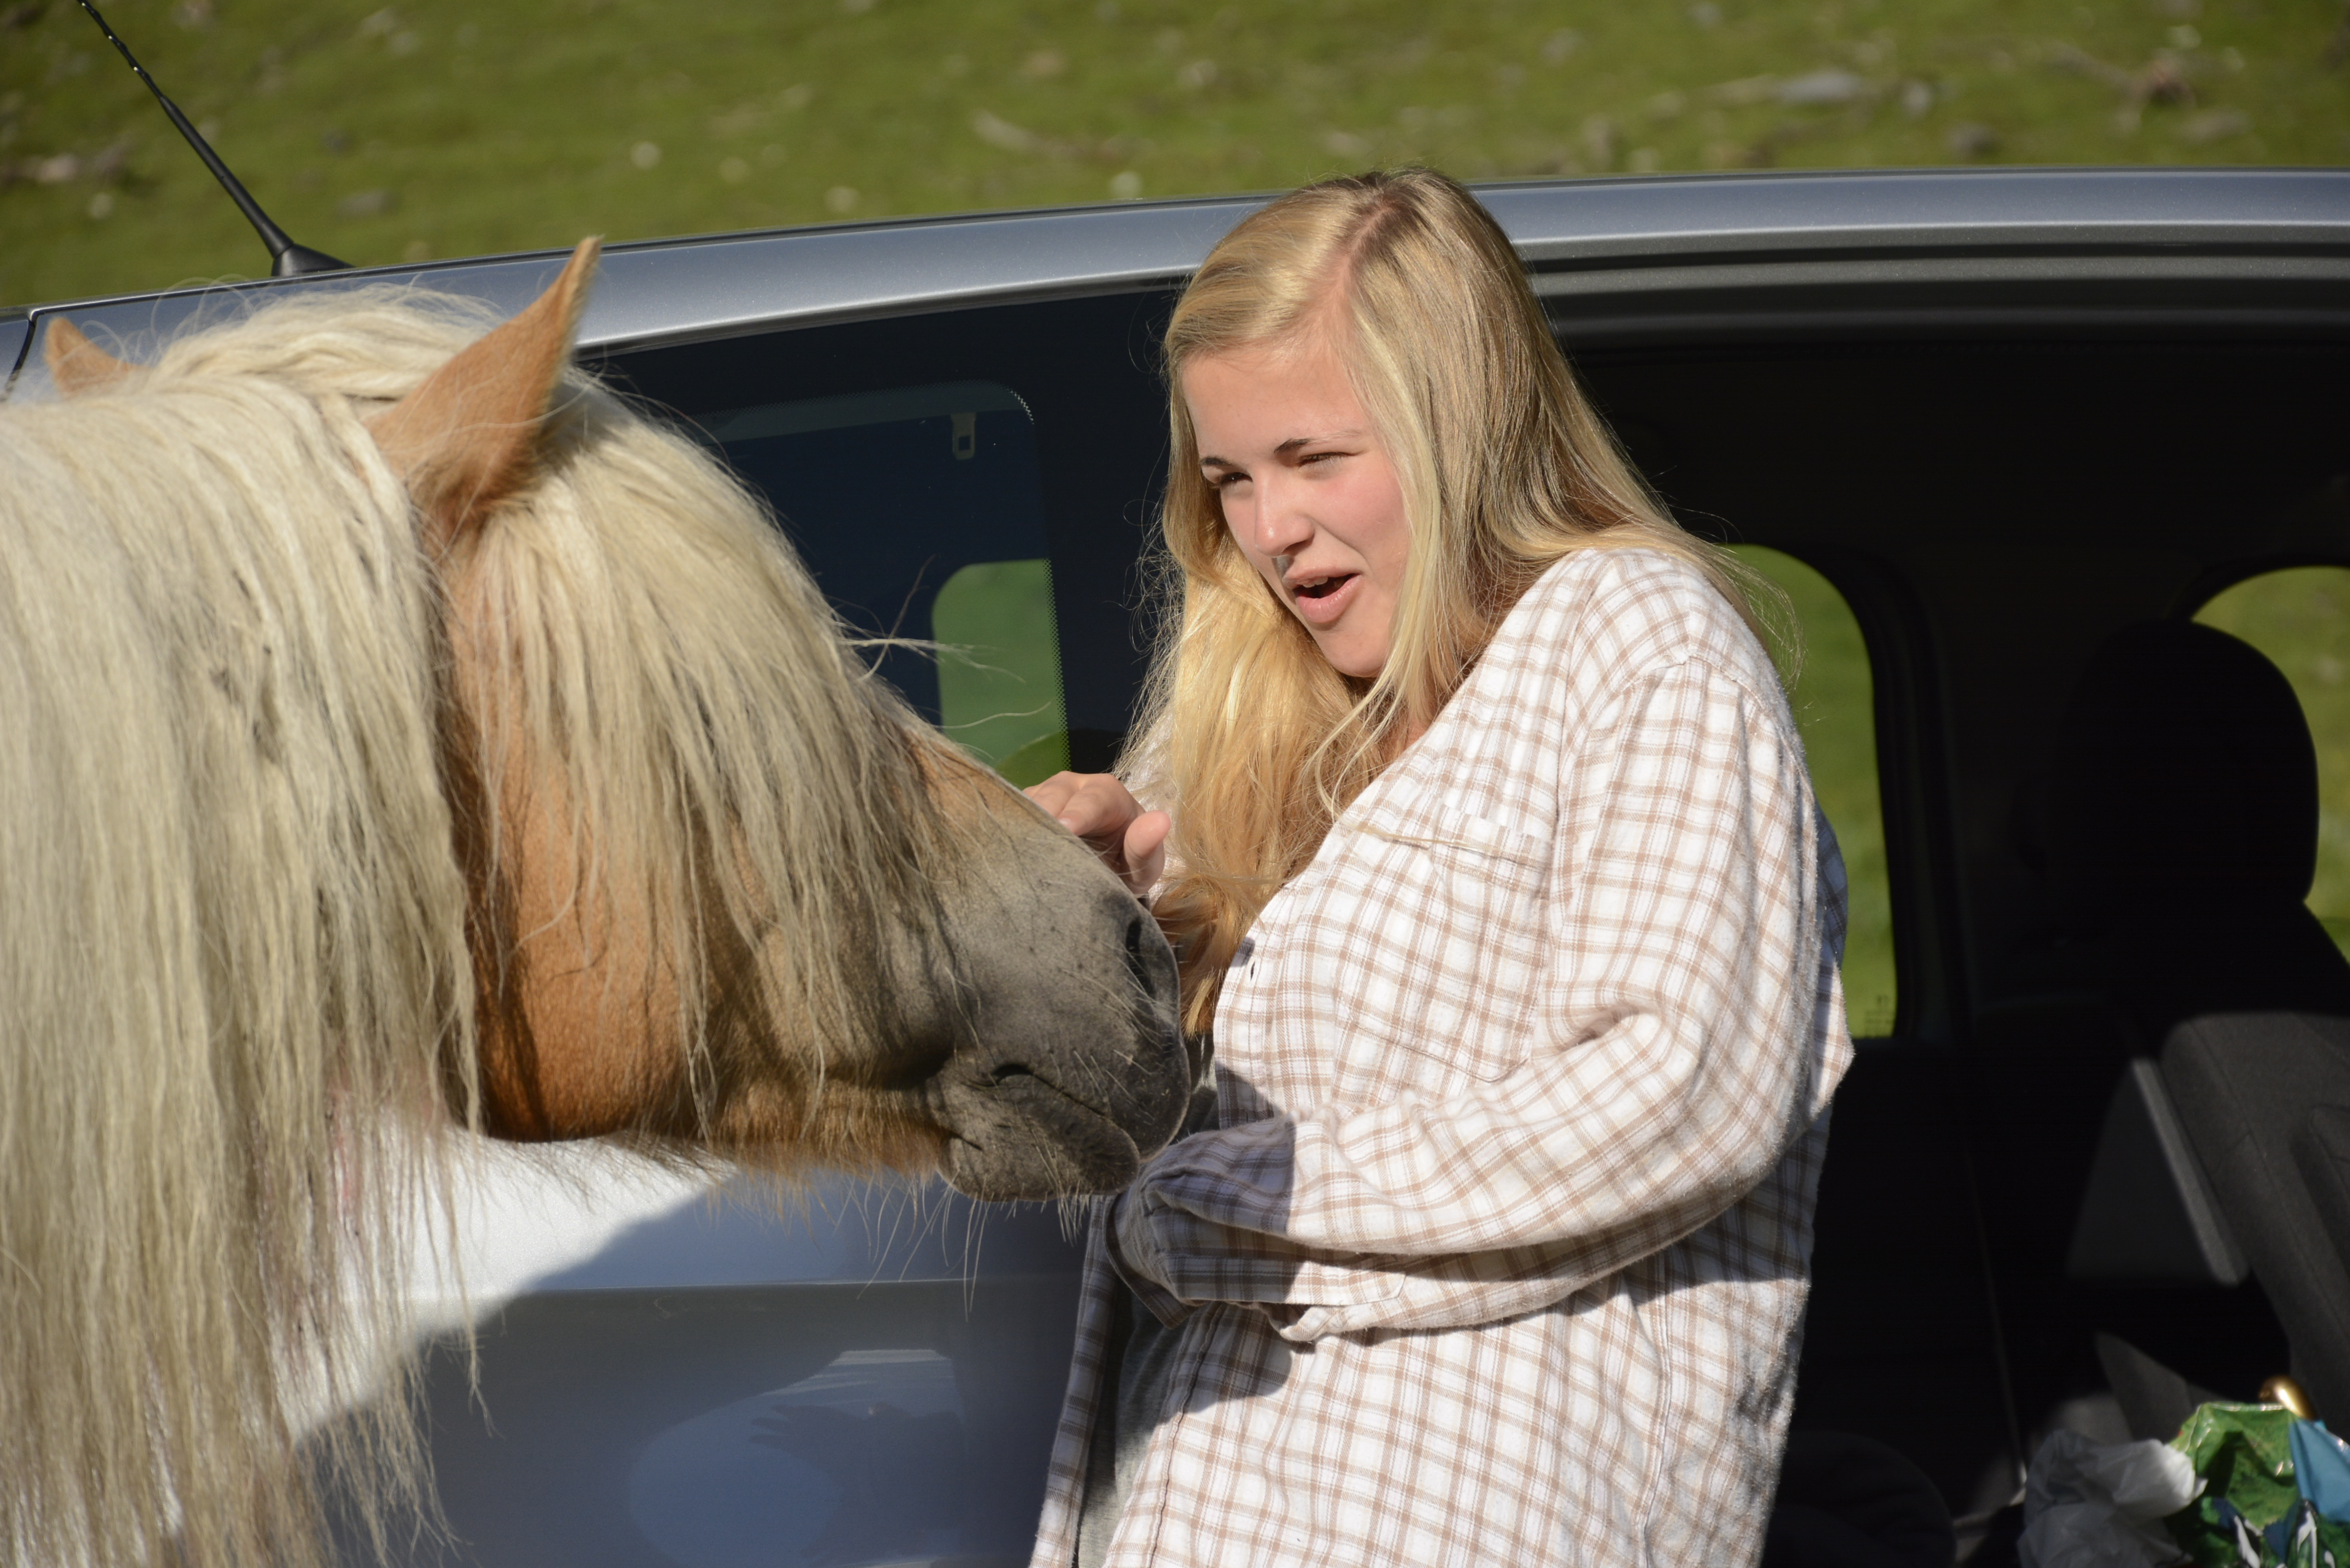 horse tries to take granola bar form girl